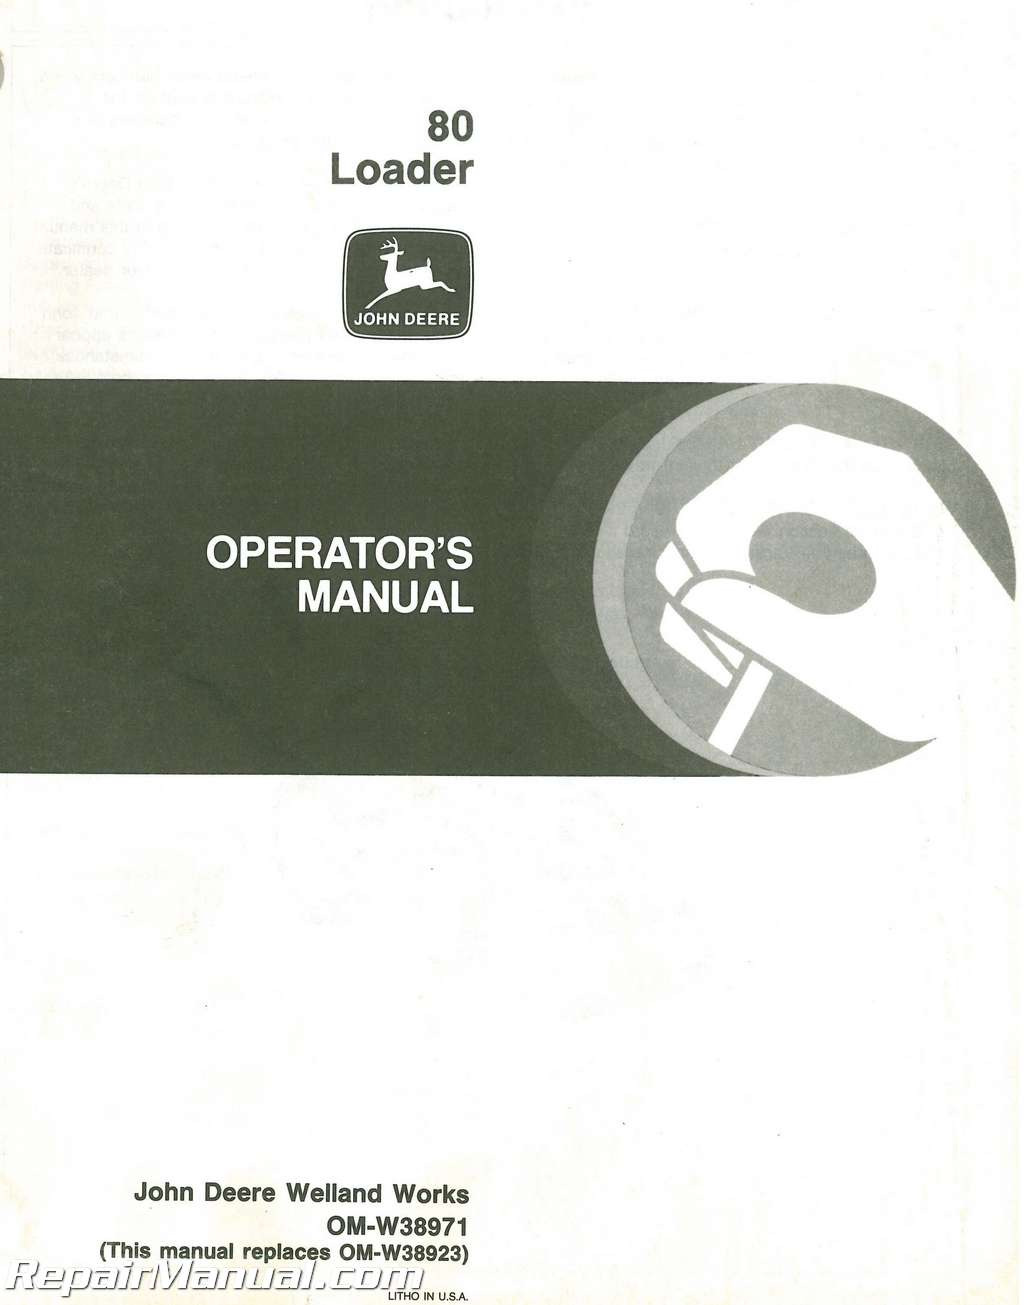 John Deere 80 Loader Operators Manual